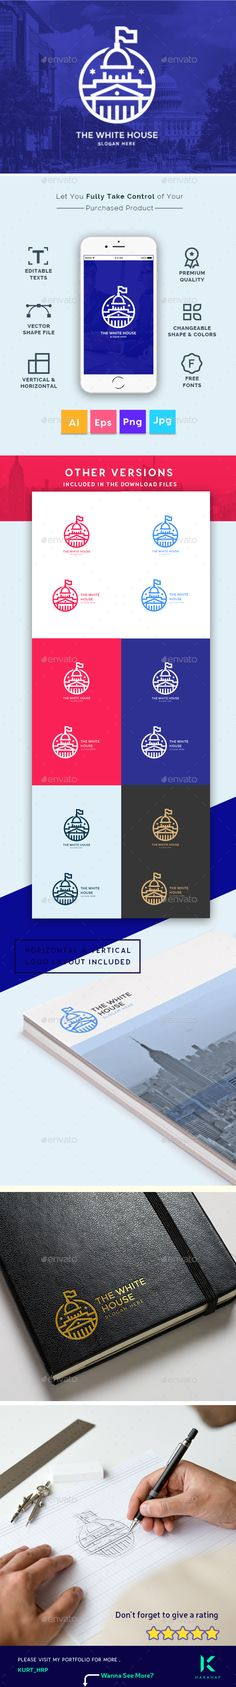 The White House  Business Consultant, Real Estates, Agency, Creative Modern Logo Template — Vector EPS #corporate #startup • Available here ➝ https://graphicriver.net/item/the-white-house-business-consultant-real-estates-agency-creative-modern-logo-template/20546494?ref=pxcr